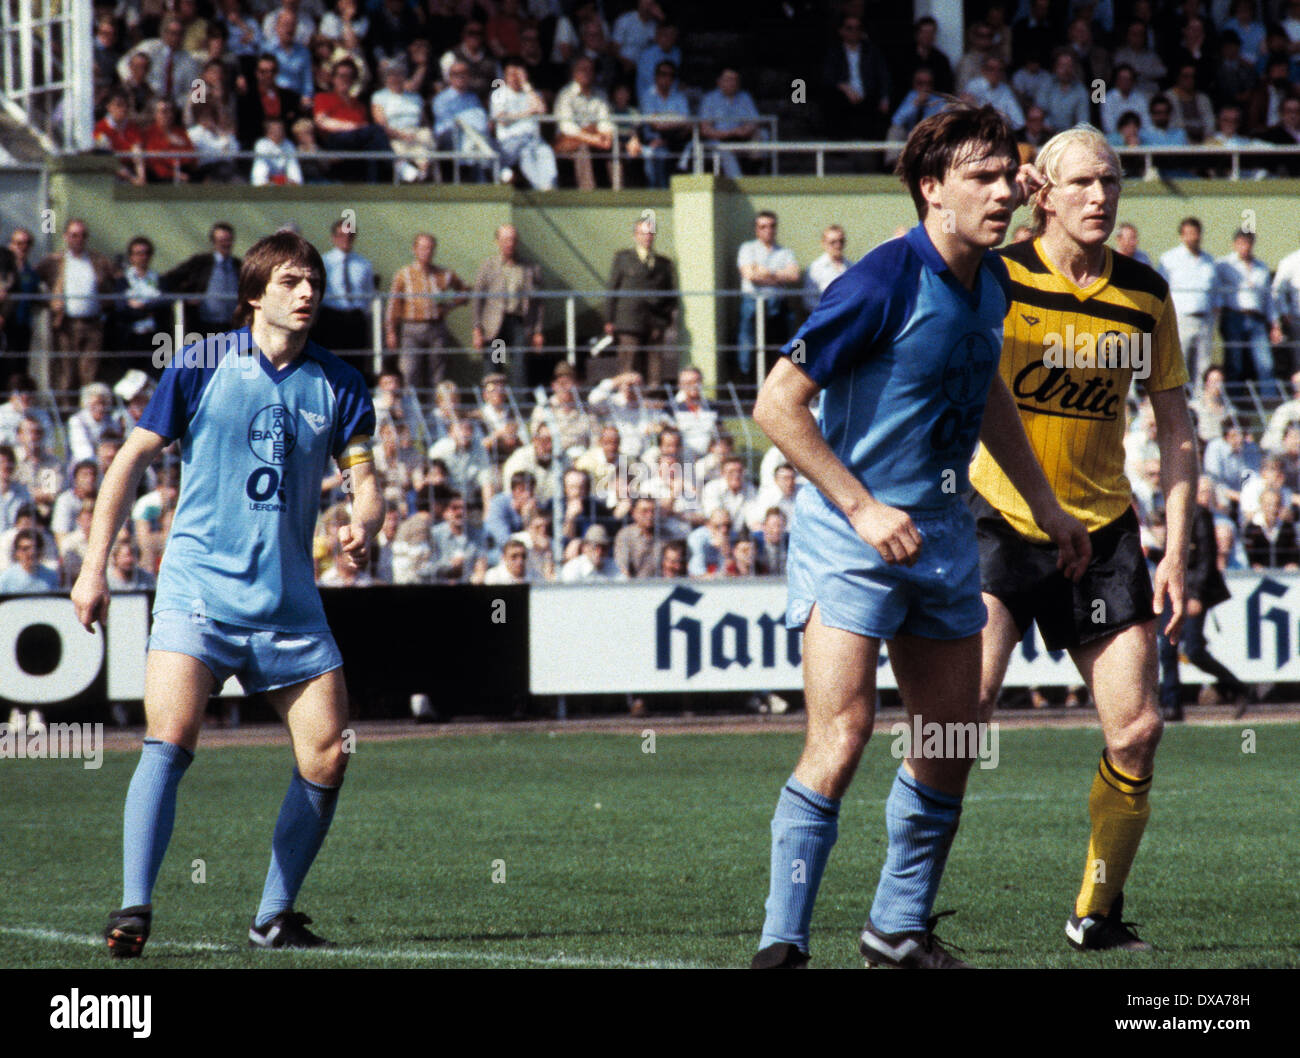 football, Bundesliga, 1983/1984, Grotenburg Stadium, FC Bayer 05 Uerdingen versus Borussia Dortmund 2:1, scene of the match, f.l.t.r. team leader Matthias Herget (Bayer), Wayne Thomas (Bayer), Rolf Ruessmann (BVB) - Stock Image